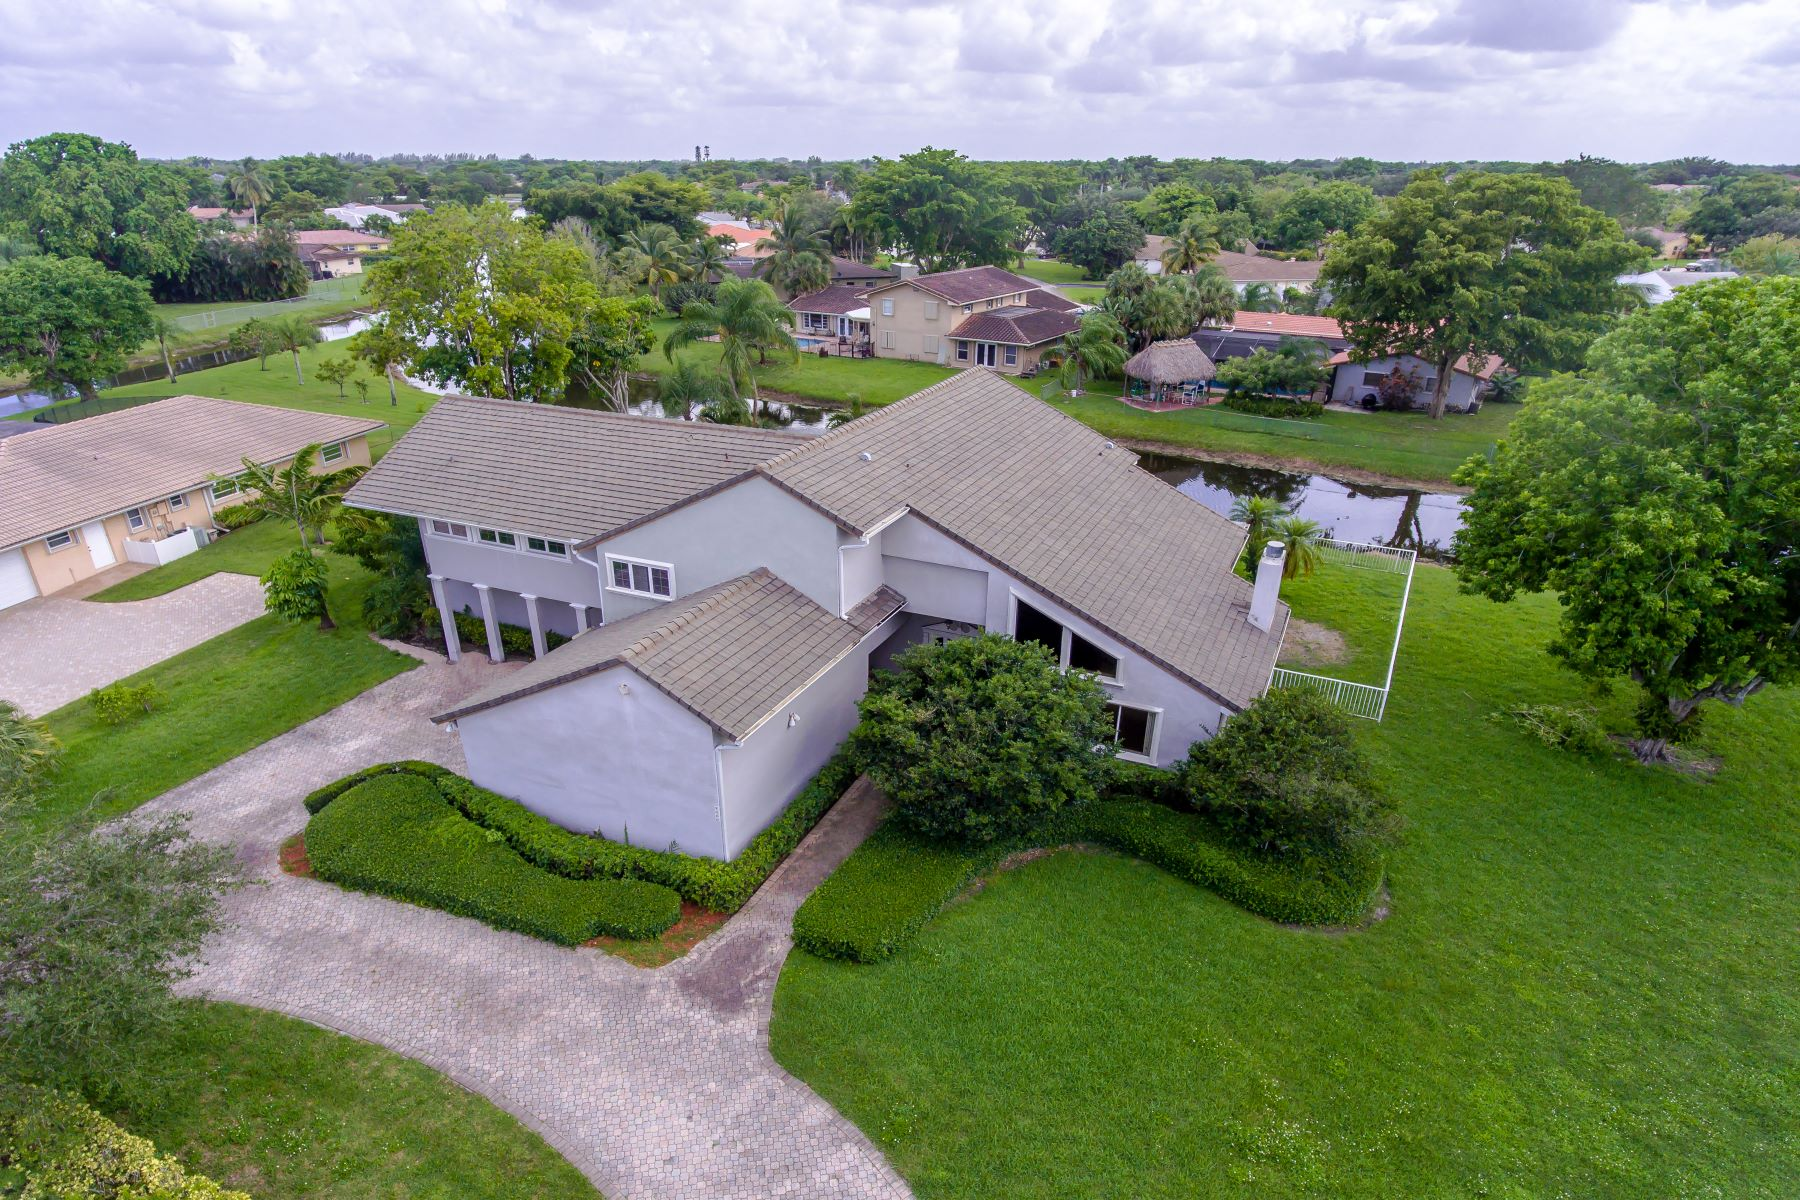 Single Family Home for Sale at 2600 Nw 112th Ave Coral Springs, Florida 33065 United States